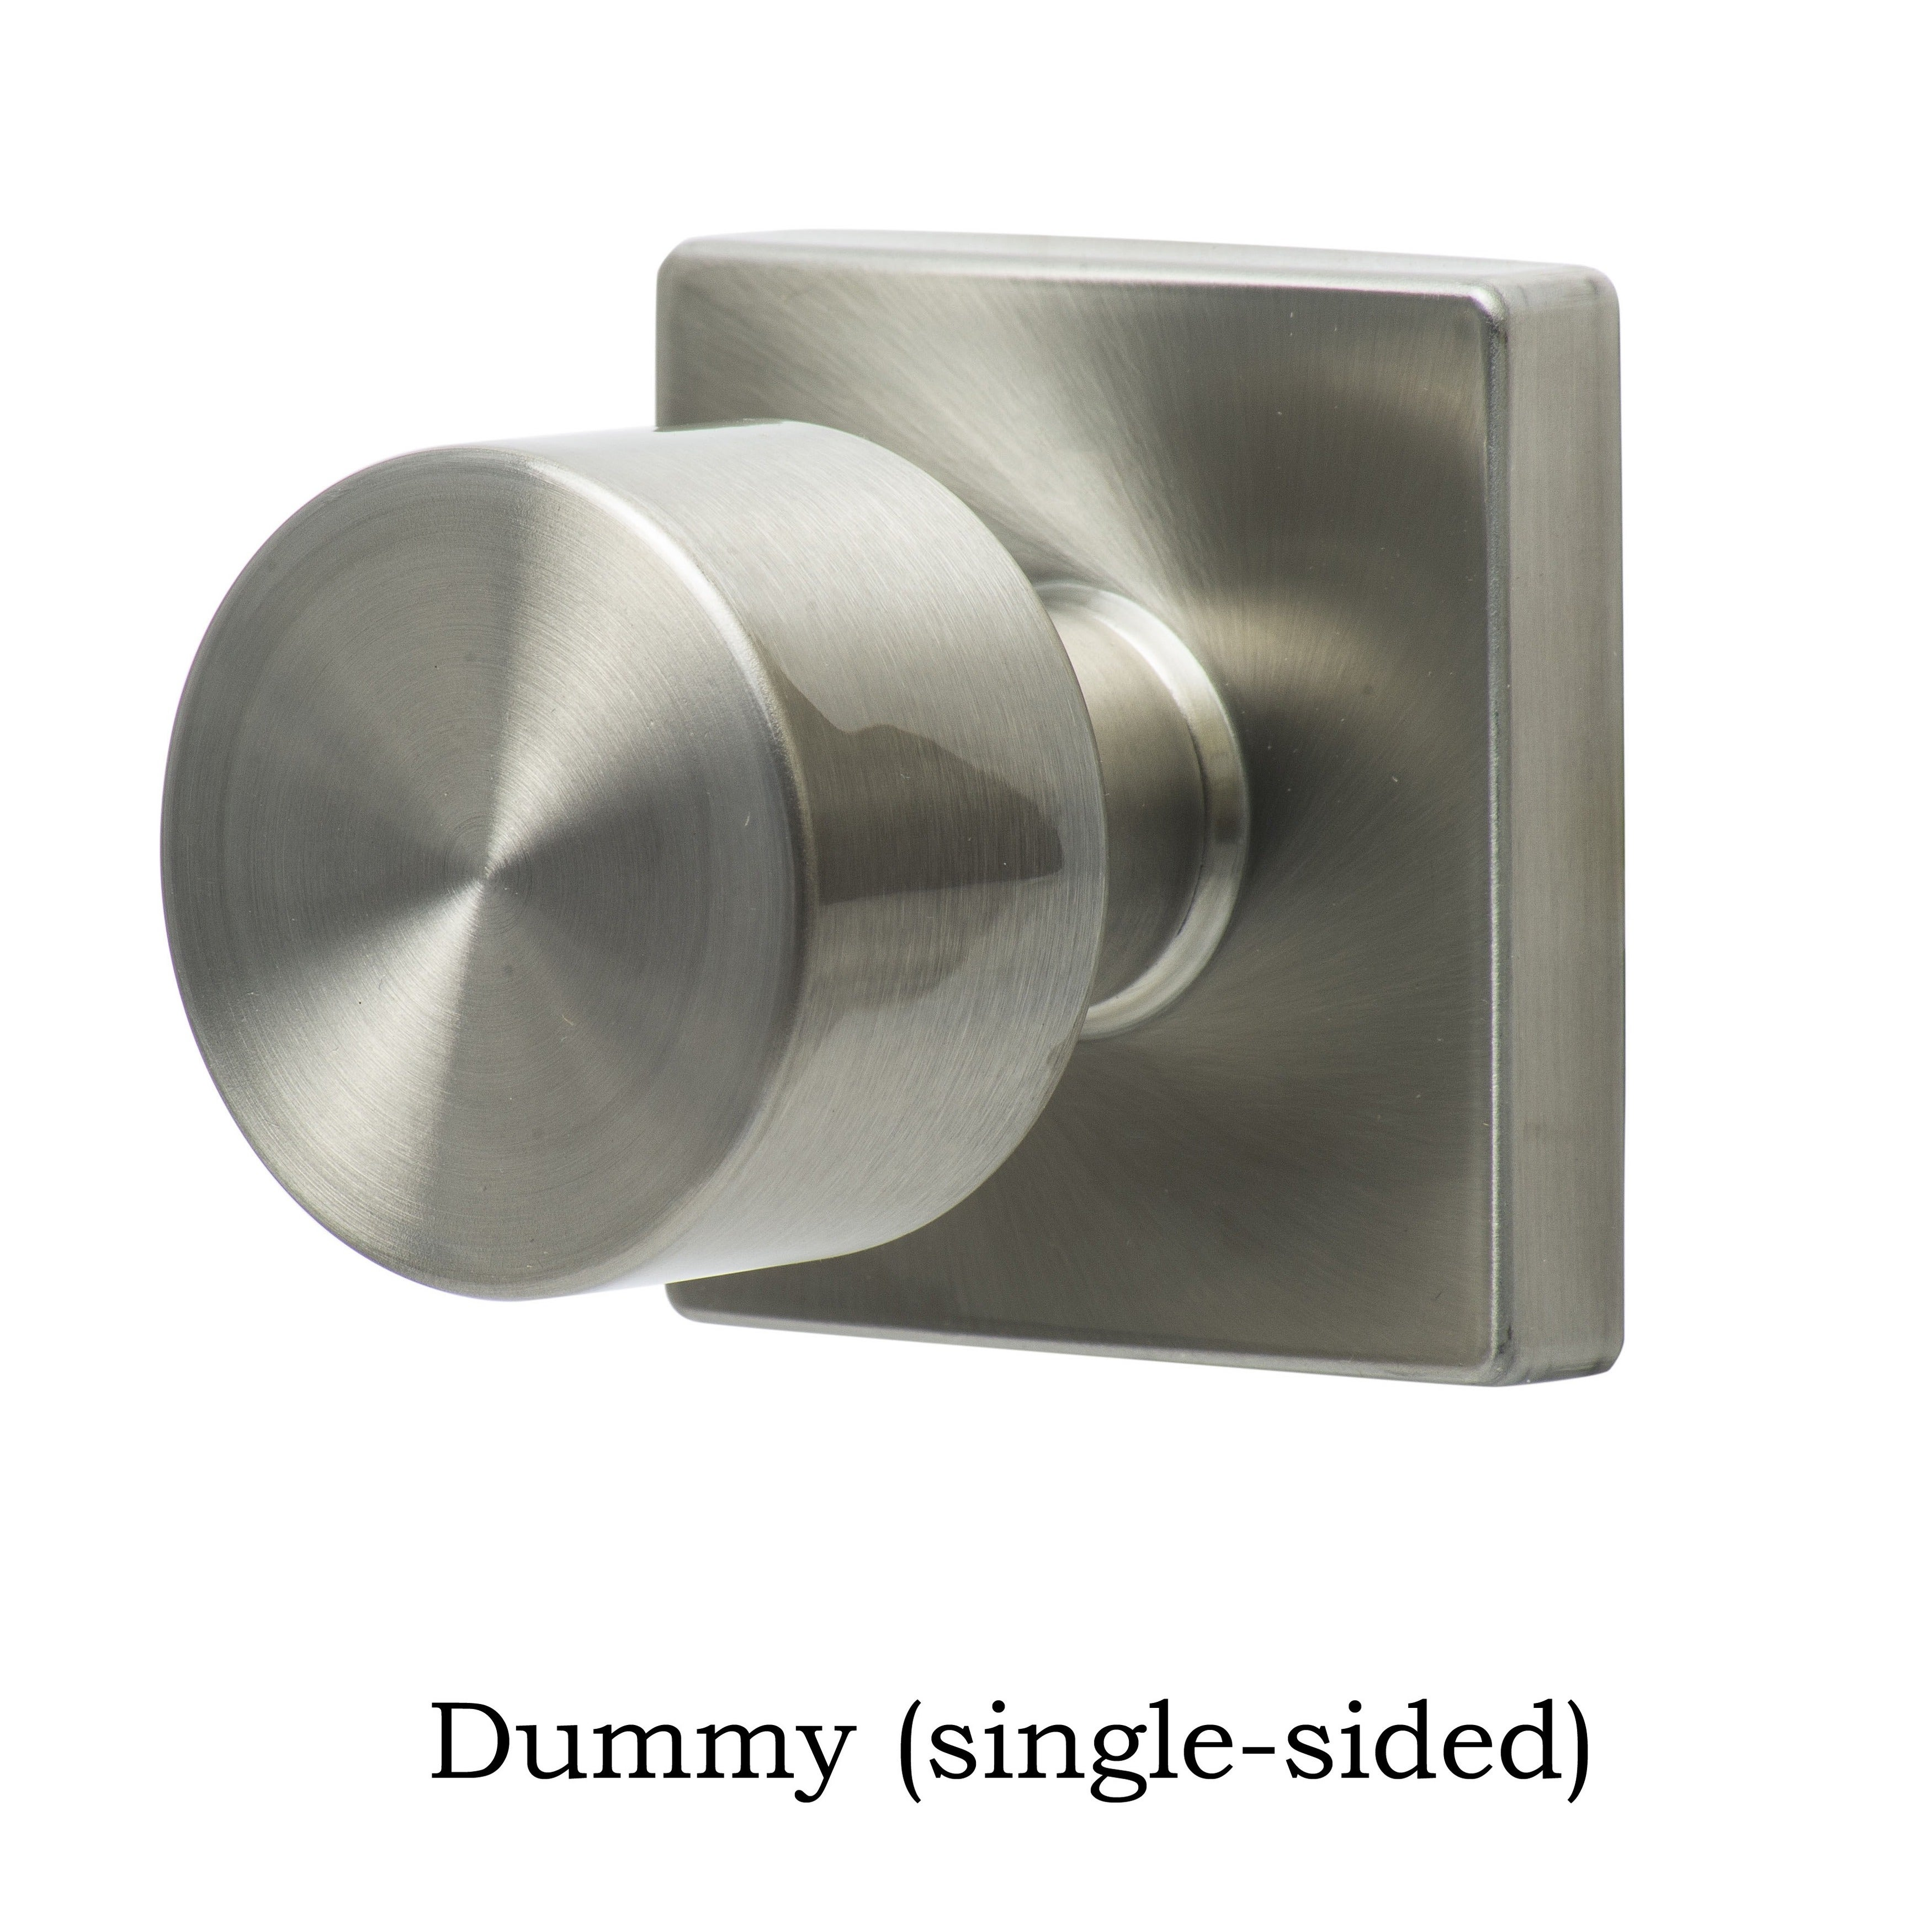 Sure Loc Bergen Stainless Steel Square Door Knob   Free Shipping On Orders  Over $45   Overstock   16896200